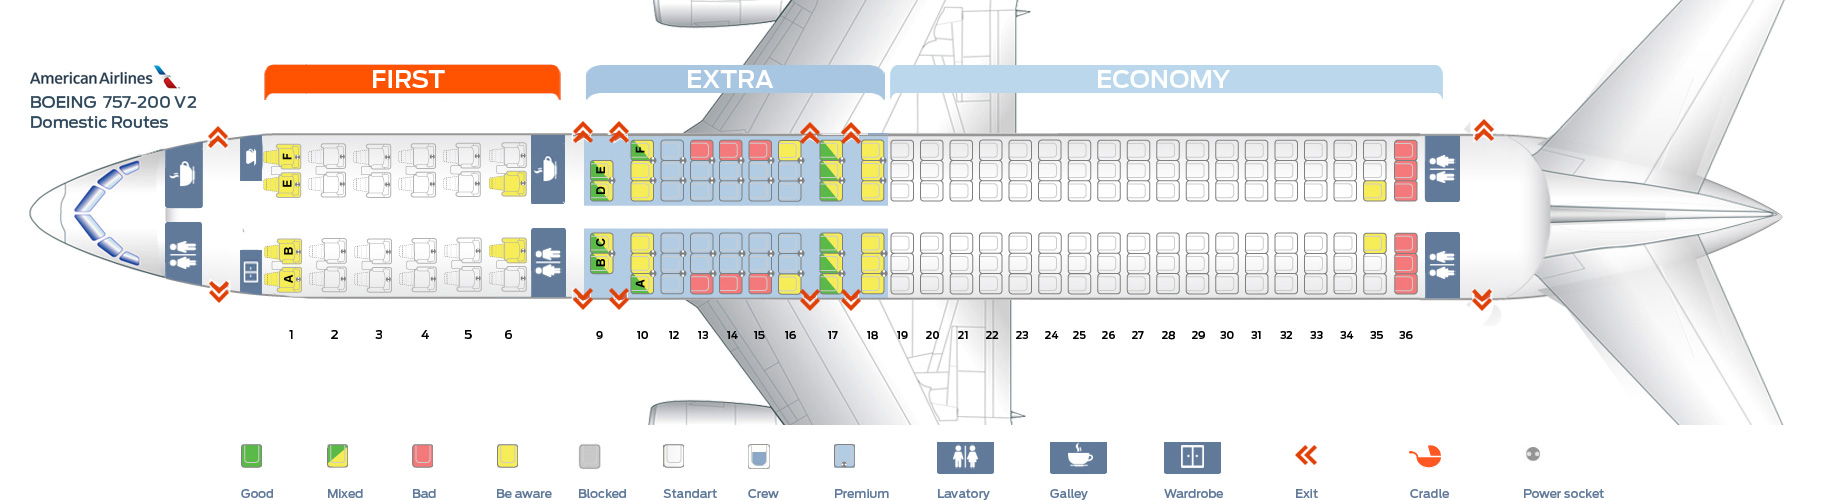 Seat_map_American_Airlines_Boeing_757-200_v2